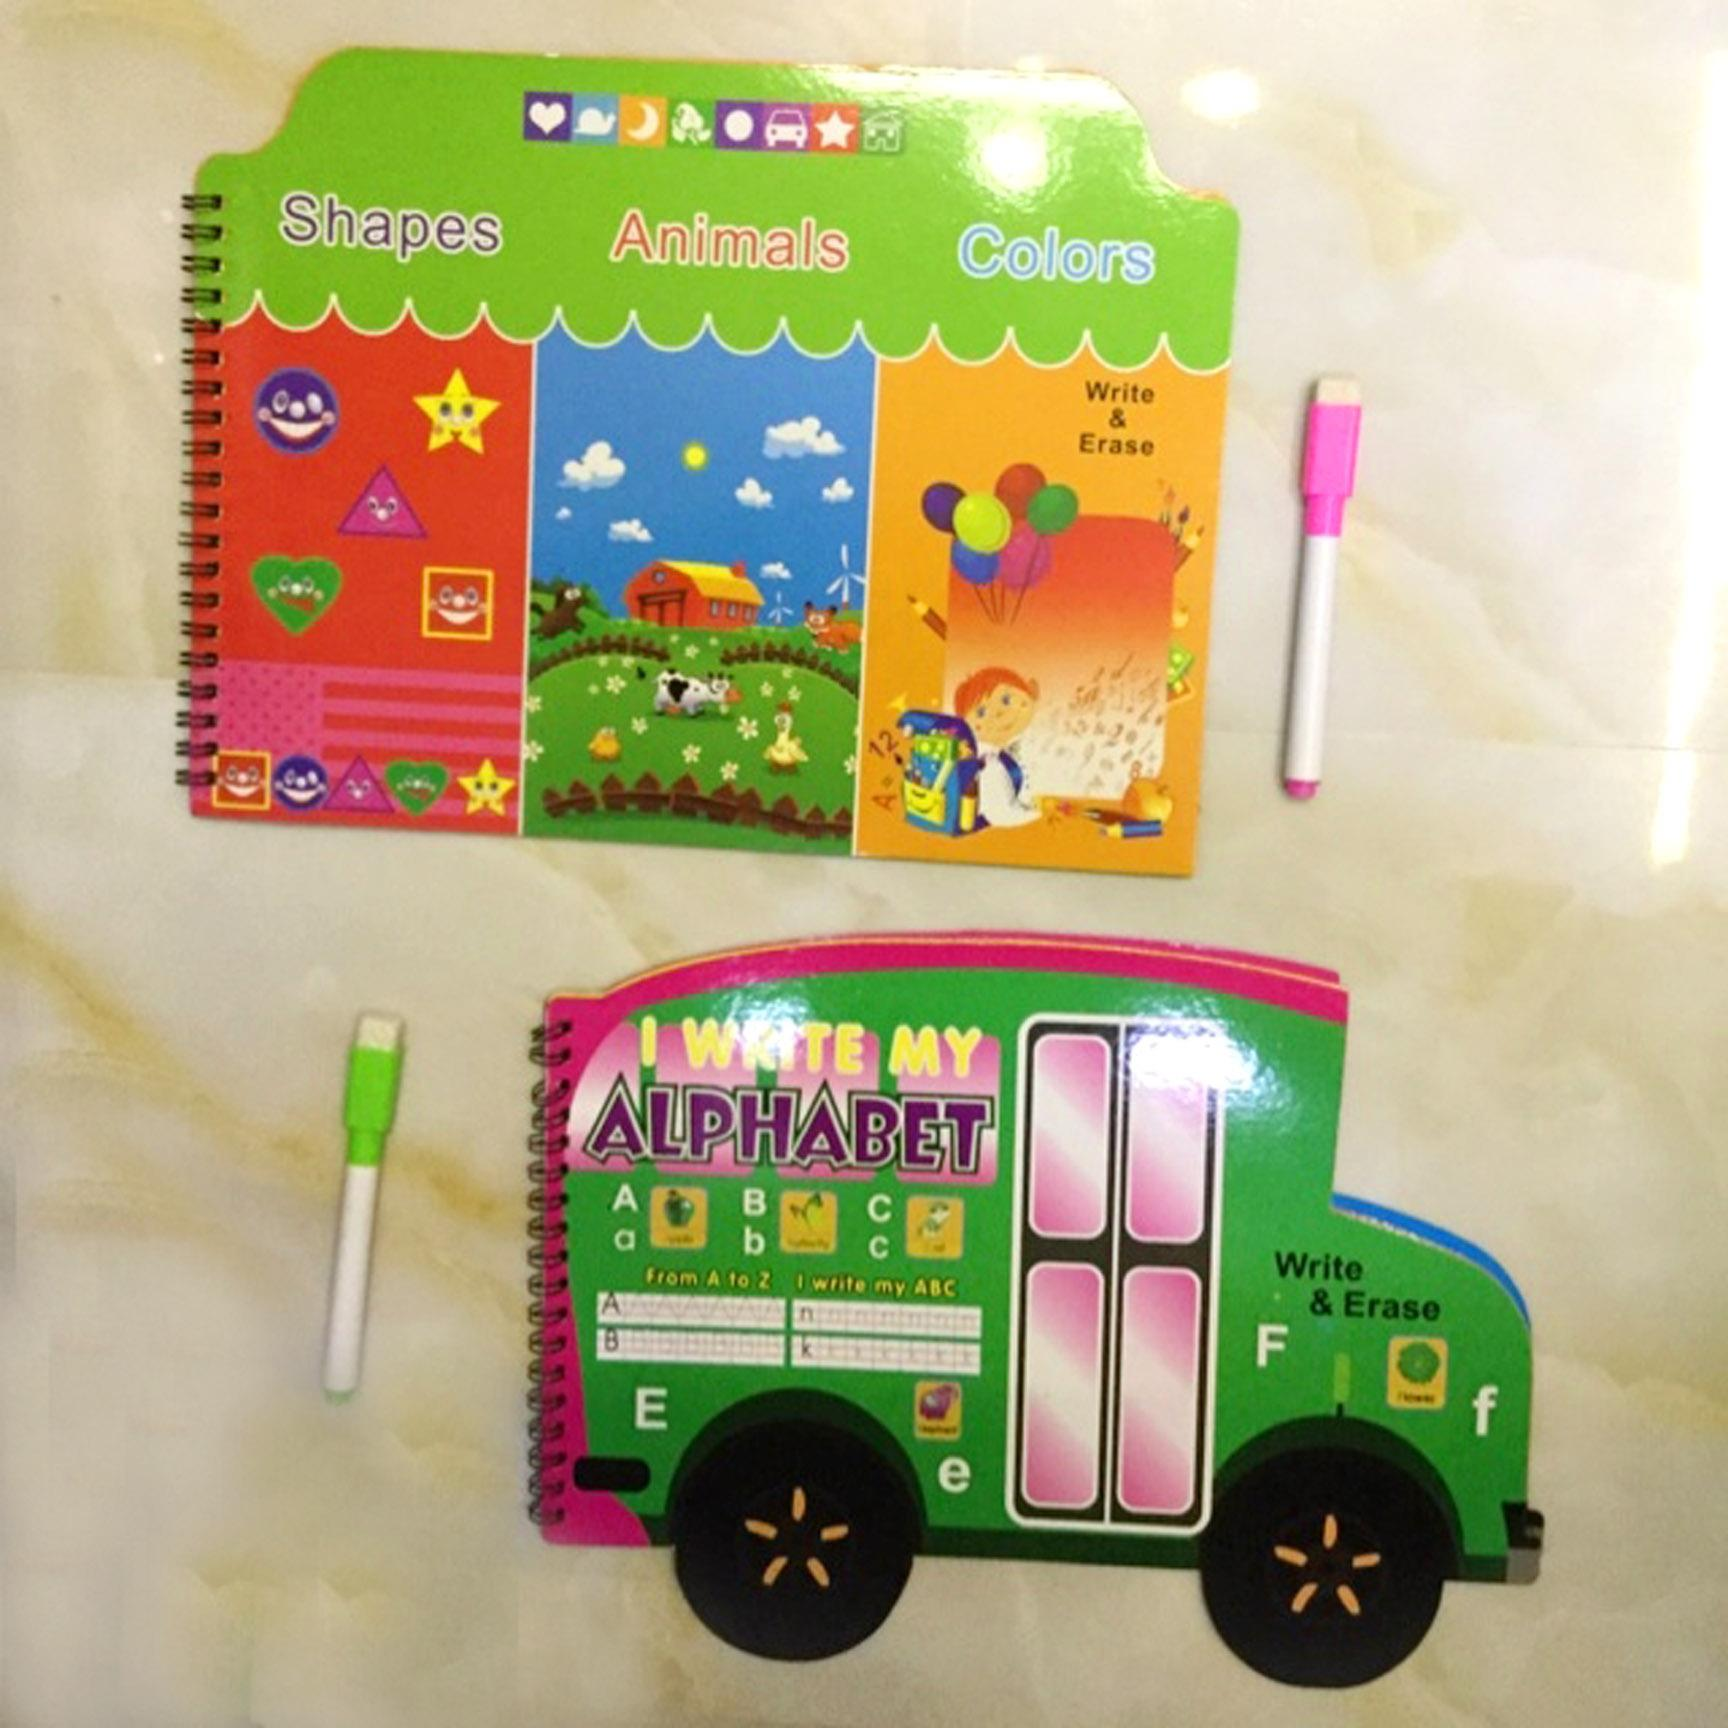 Erasable Alphabet & Numbers Writing Book Set For Toddlers Kids - Educational Activity Childrens Book By Tanyabella.